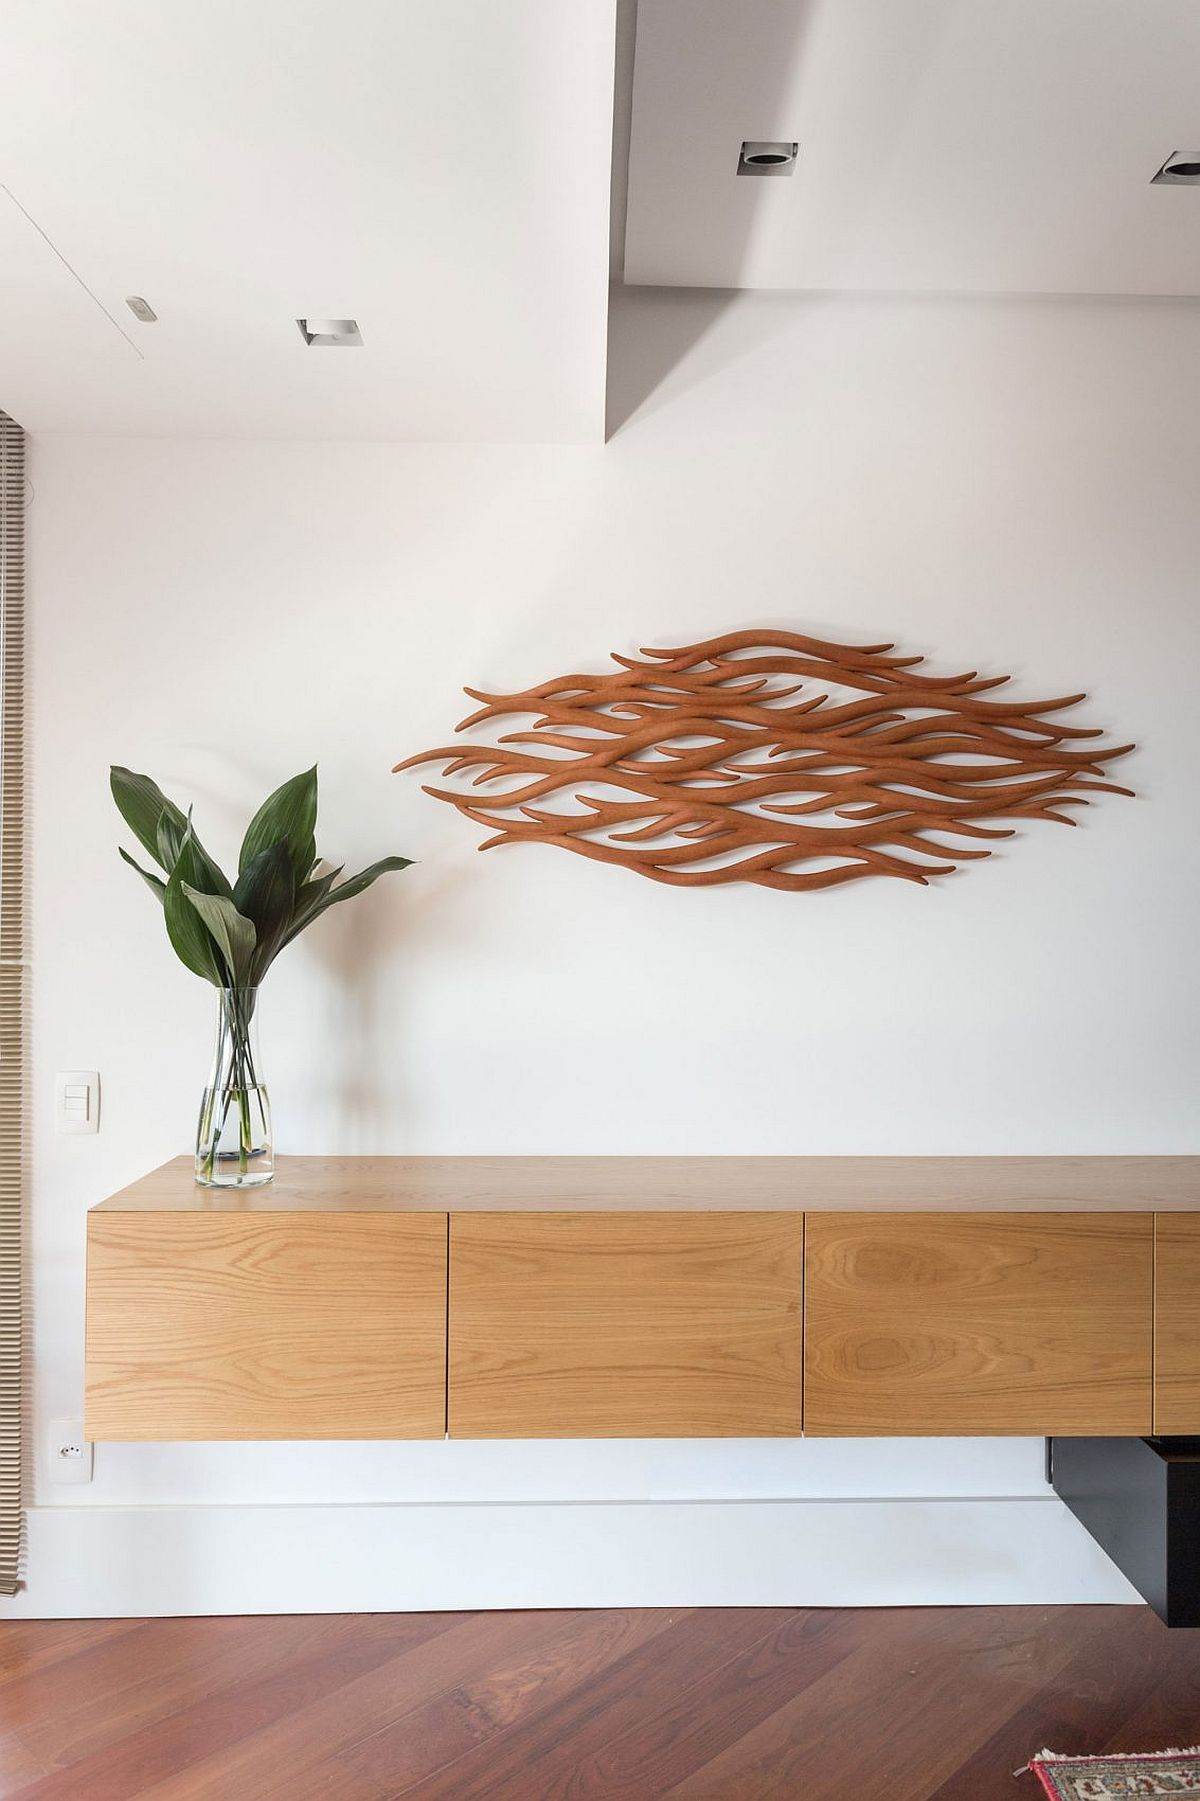 3D wall art addition for the modern Brazilian apartment